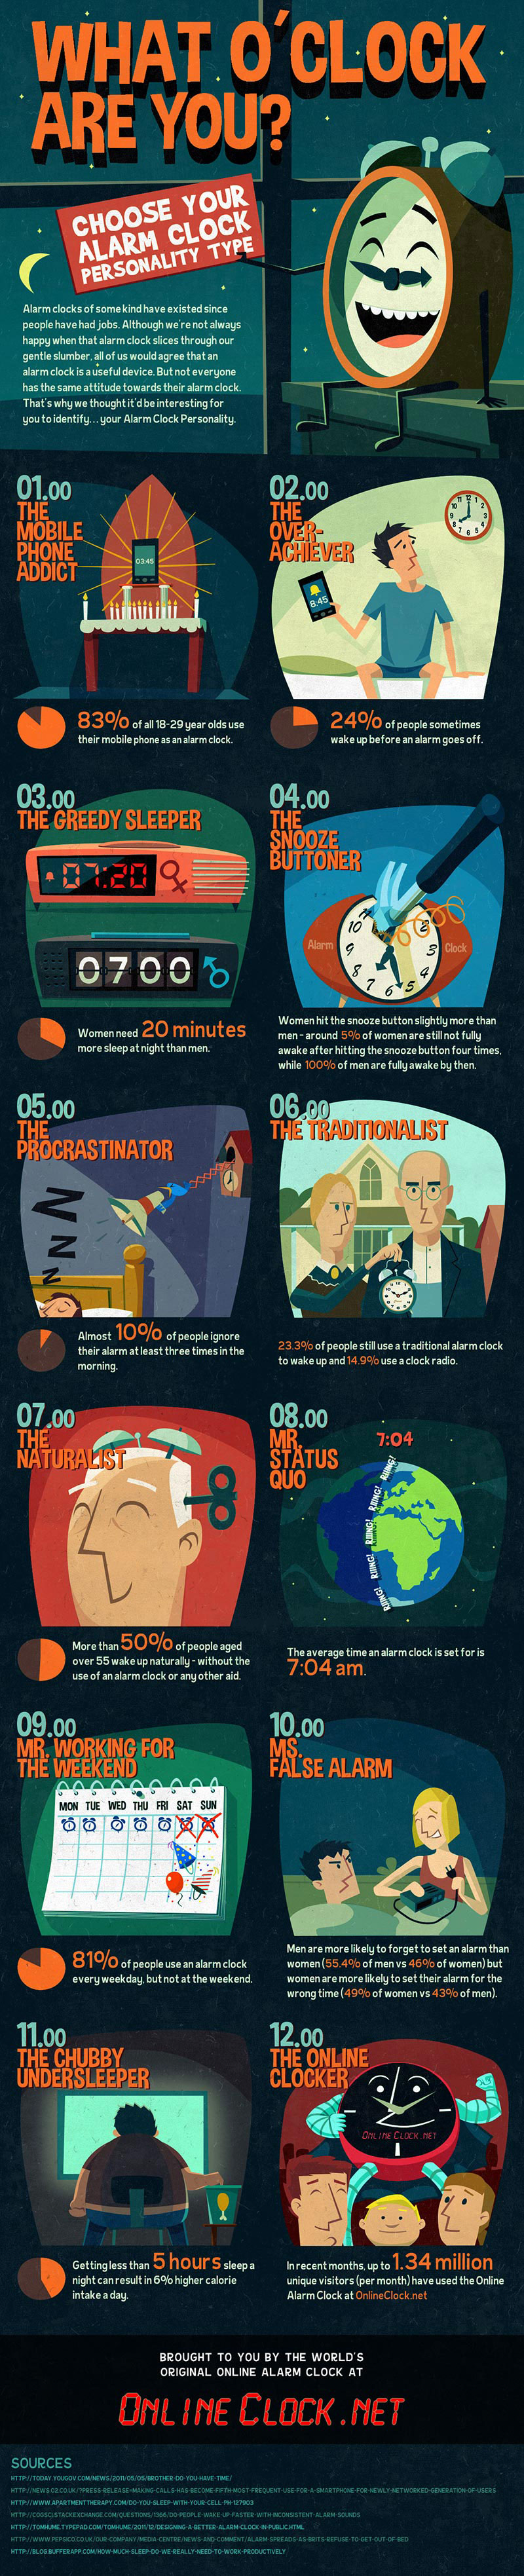 Your Personality Type Based On Alarm Clock Interaction [Infographic]